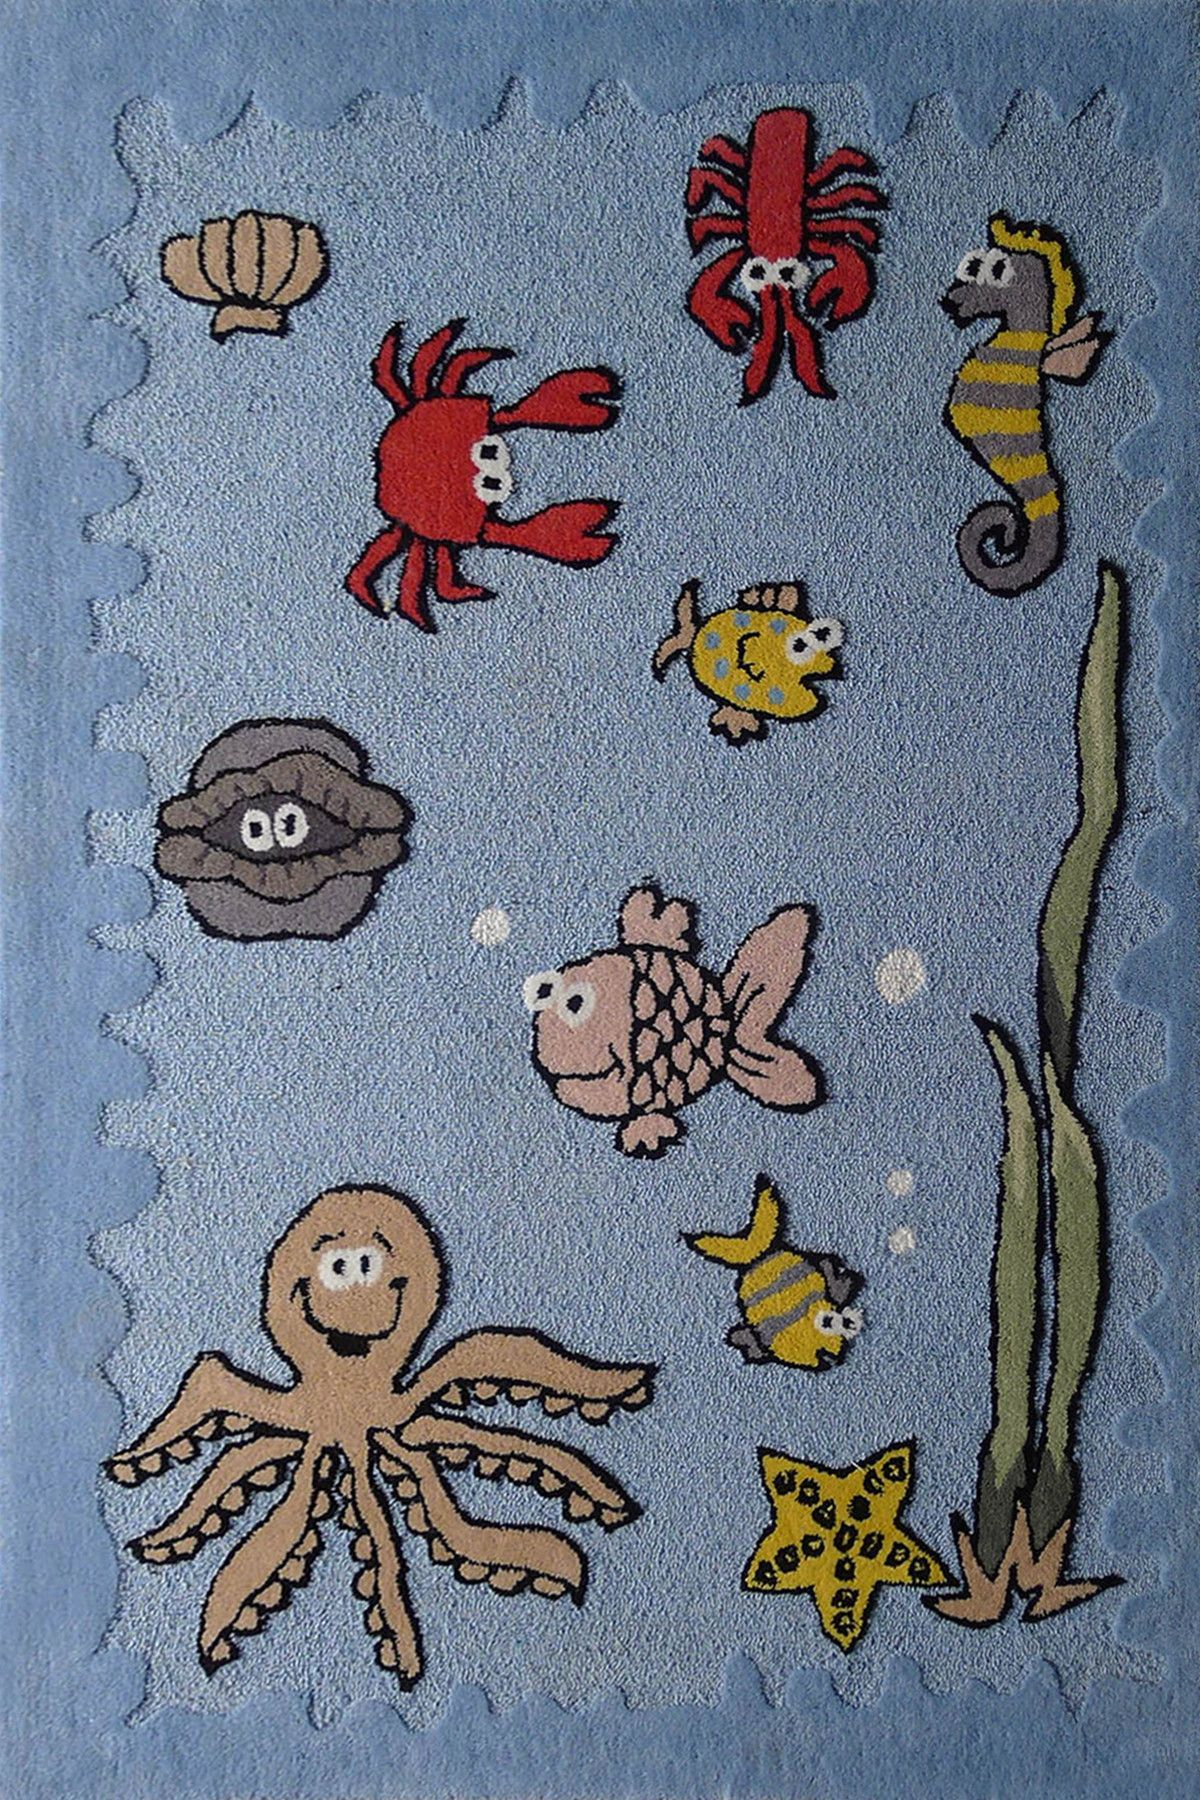 4' x 6' ft  Boy's Aquarium Blue Bedroom Kids Area Rug with Sea Animals is part of Kids bedroom Rug -  No AssemblySoft Extremely Durable rug, Extraordinary with artistic Designs that fit perfectly in any kids Bedroom, Nursery Room, School, etc  Our best selling line that provides an easy way to unify your décor  This collection features warm, rich tones in a color and educational patterns  It's a must have area rug for indoors  These rugs have Unique tone colors that don't fade after wash  Easy to maintain and wash  Details  This rugs Measures ~4ft x 6ft 1 inch thick Pile Height  Stain Resistant Weave Hand Tufted , Hand Carved  Durable & Thick  Material  100% Poly Acrylic Origin Made in USA and Imported   PLEASE SEE CLEANING PAGE FOR PROFESSIONAL CLEANING INSTRUCTIONS      Note The digital images we display have the most accurate color possible  However, due to differences in computer monitors, we cannot be responsible for variations in color between the actual product and your screen  Please be advised that in some cases patterns and colors may vary according to ~Size  Sizes are approximate